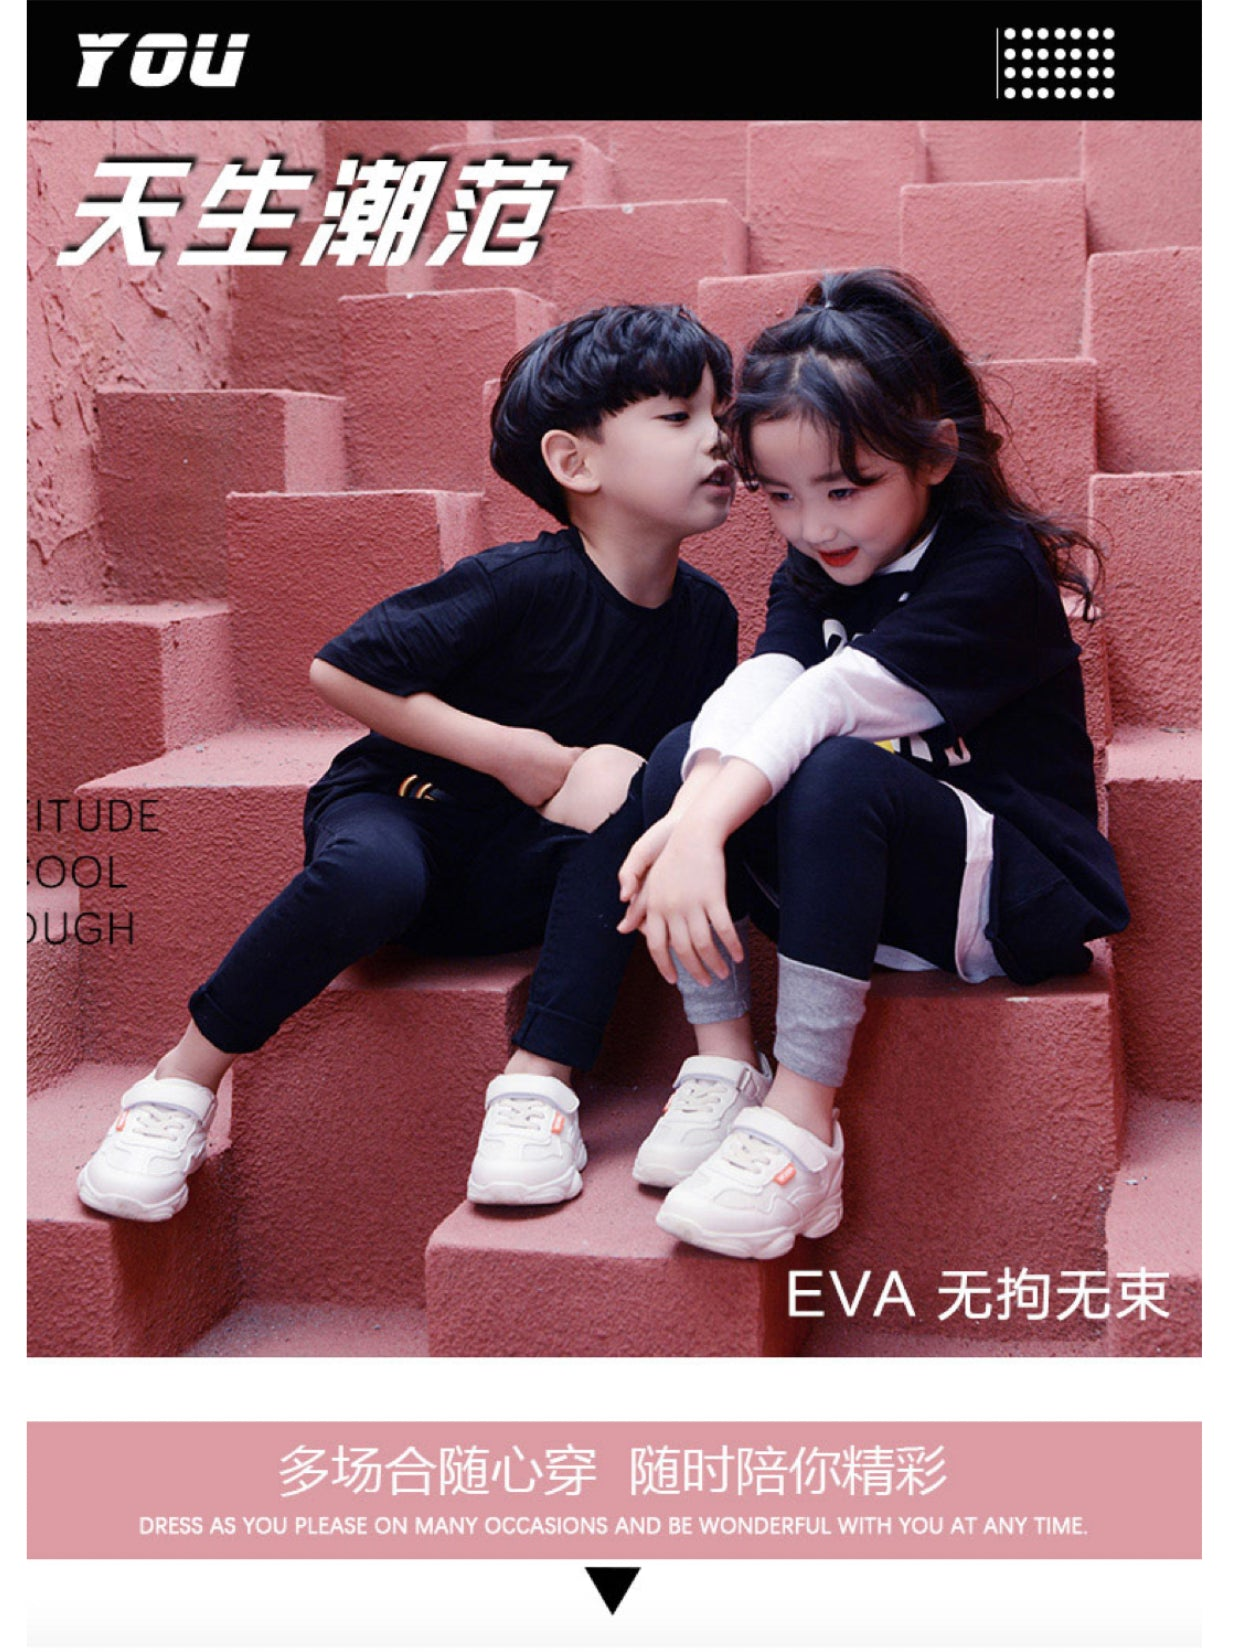 Eva Kids Sports Shoes